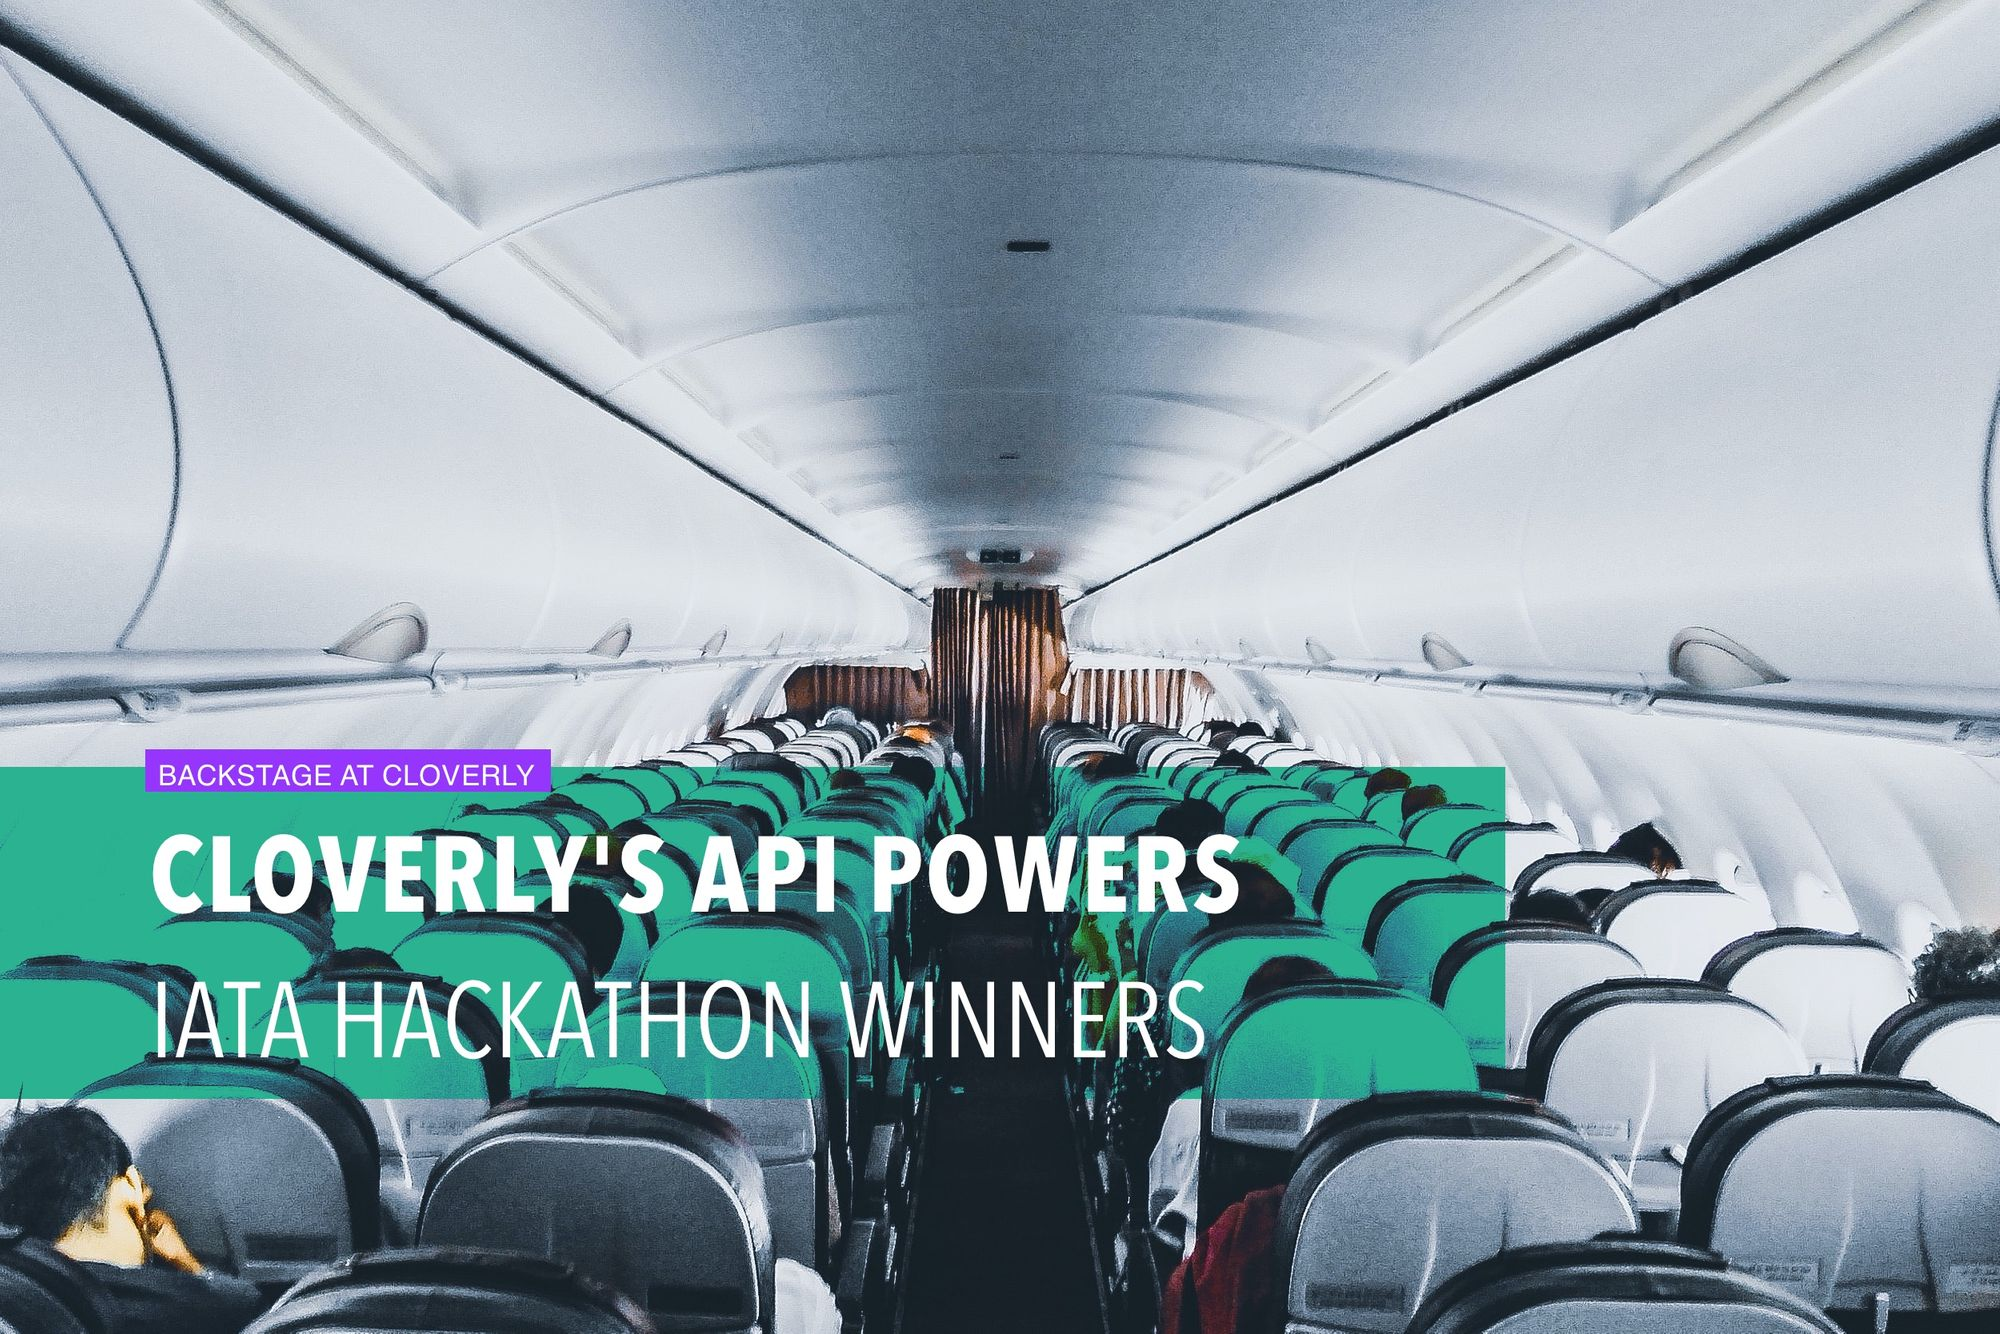 Cloverly's API powers IATA Hackathon winners